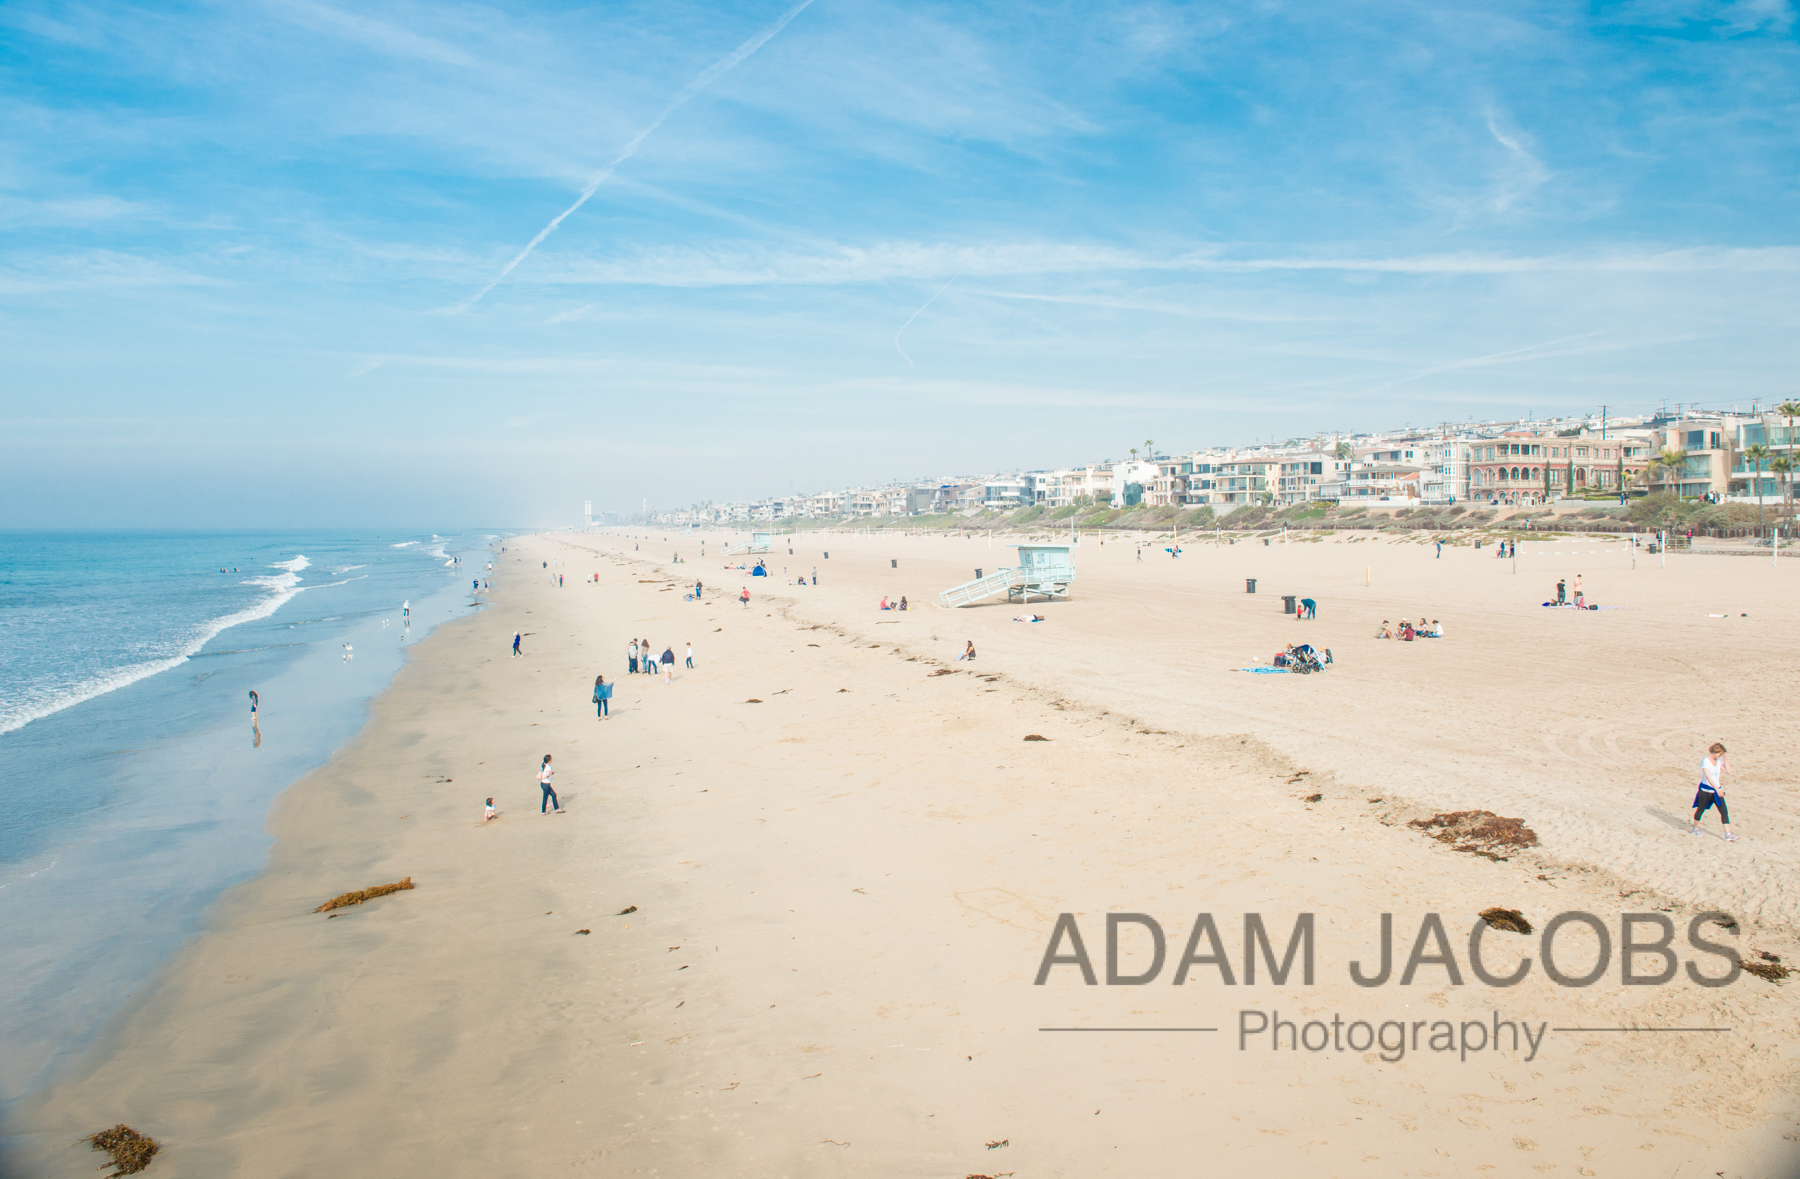 Adam Jacobs Photography Fine Art Landscape Photo California Manhattan Beach For Sale